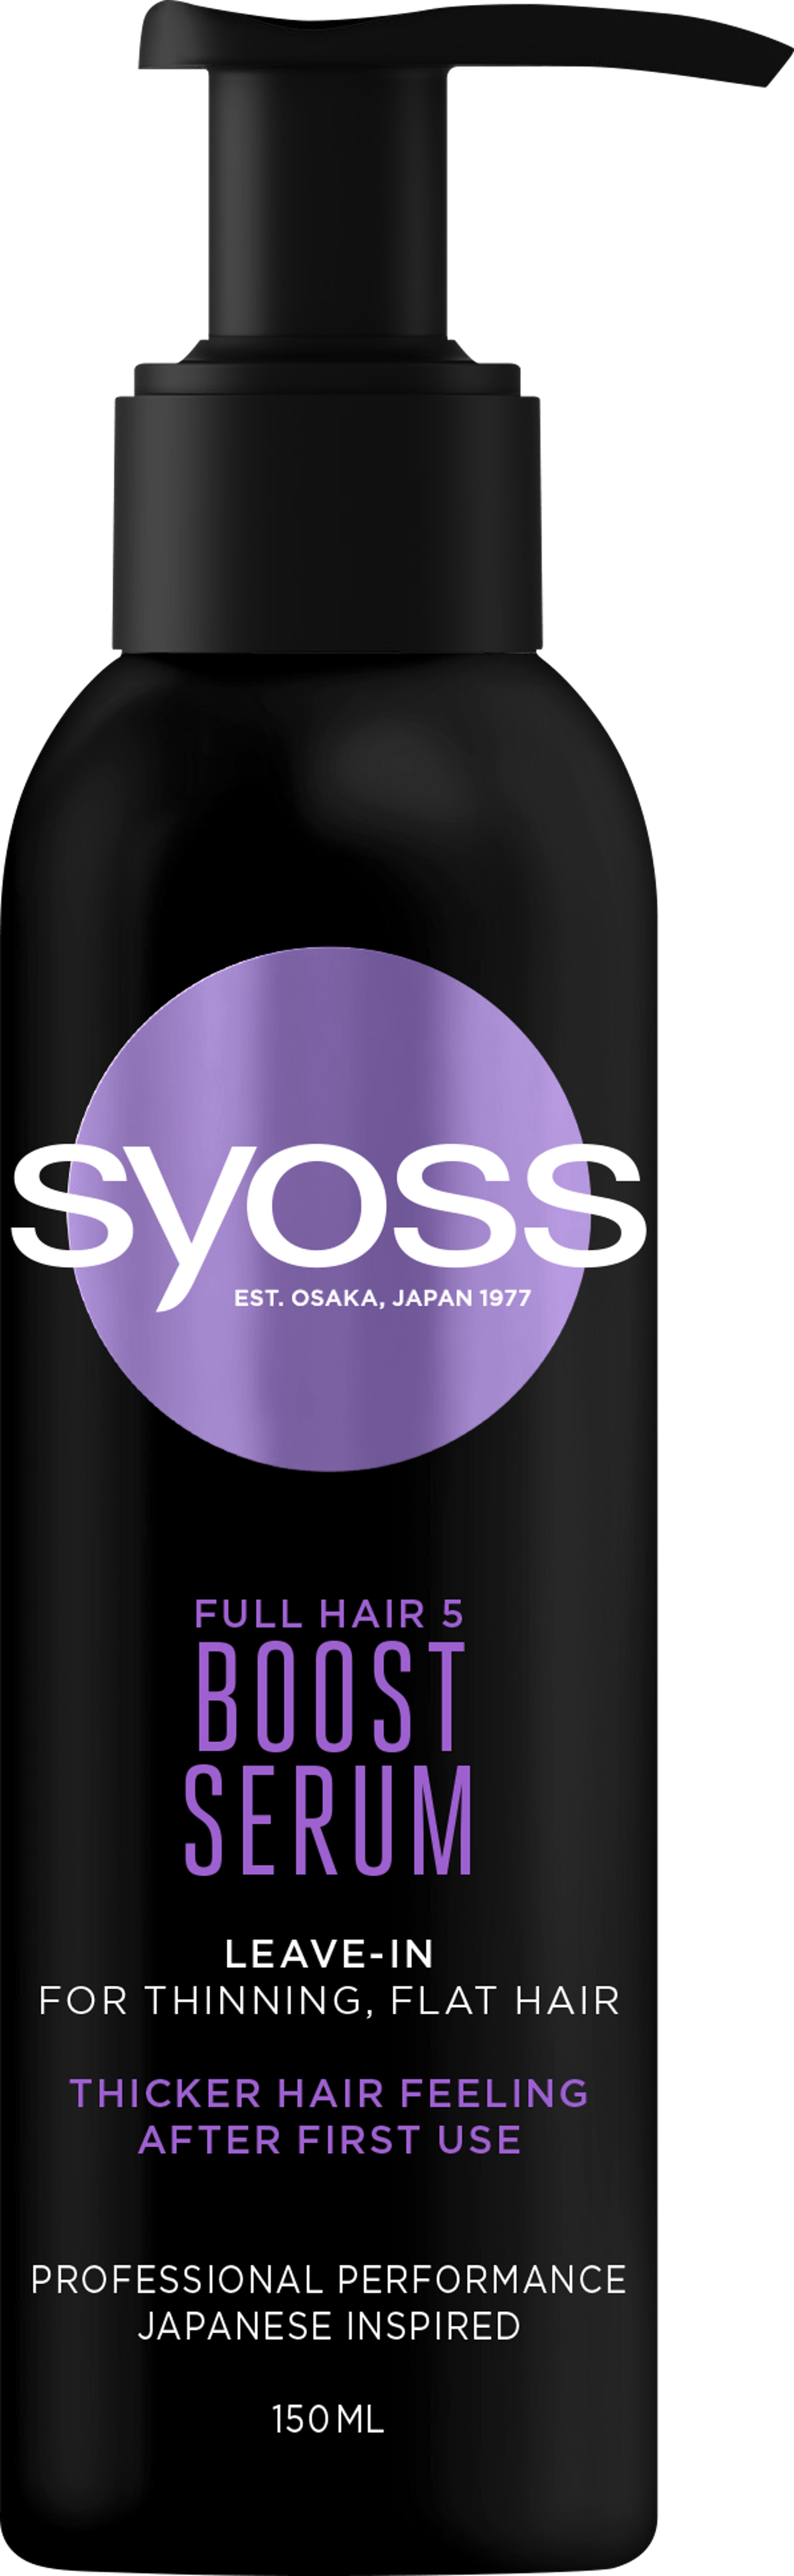 Full Hair 5 Boost Serum